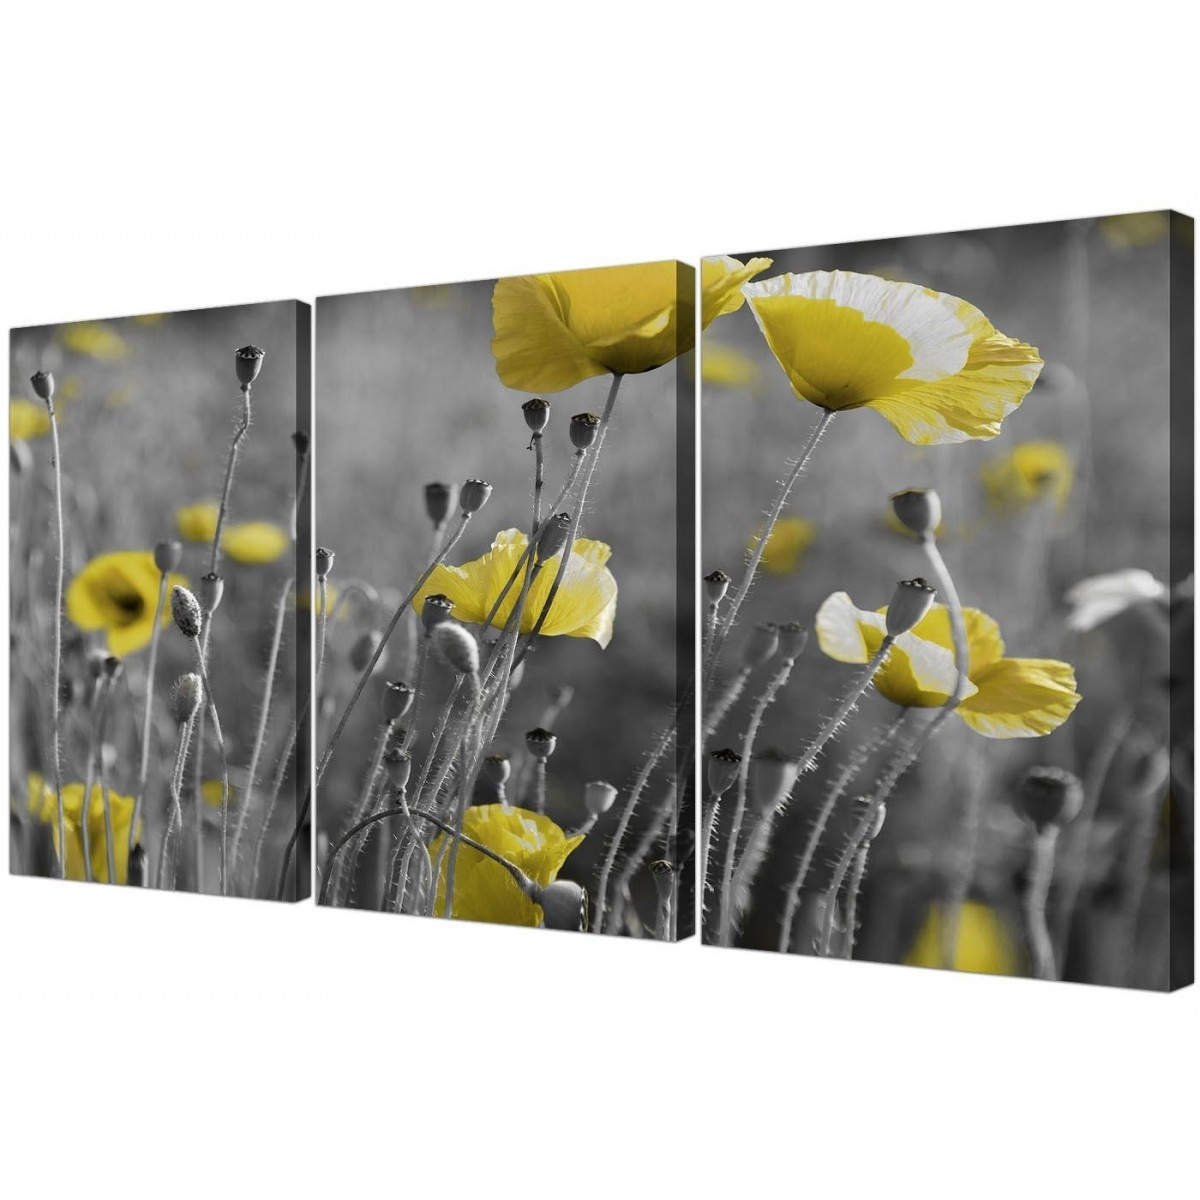 Widely Used Black And White Canvas With Grey And Yellow Poppies Wall Art Prints With Yellow Wall Art (View 2 of 15)